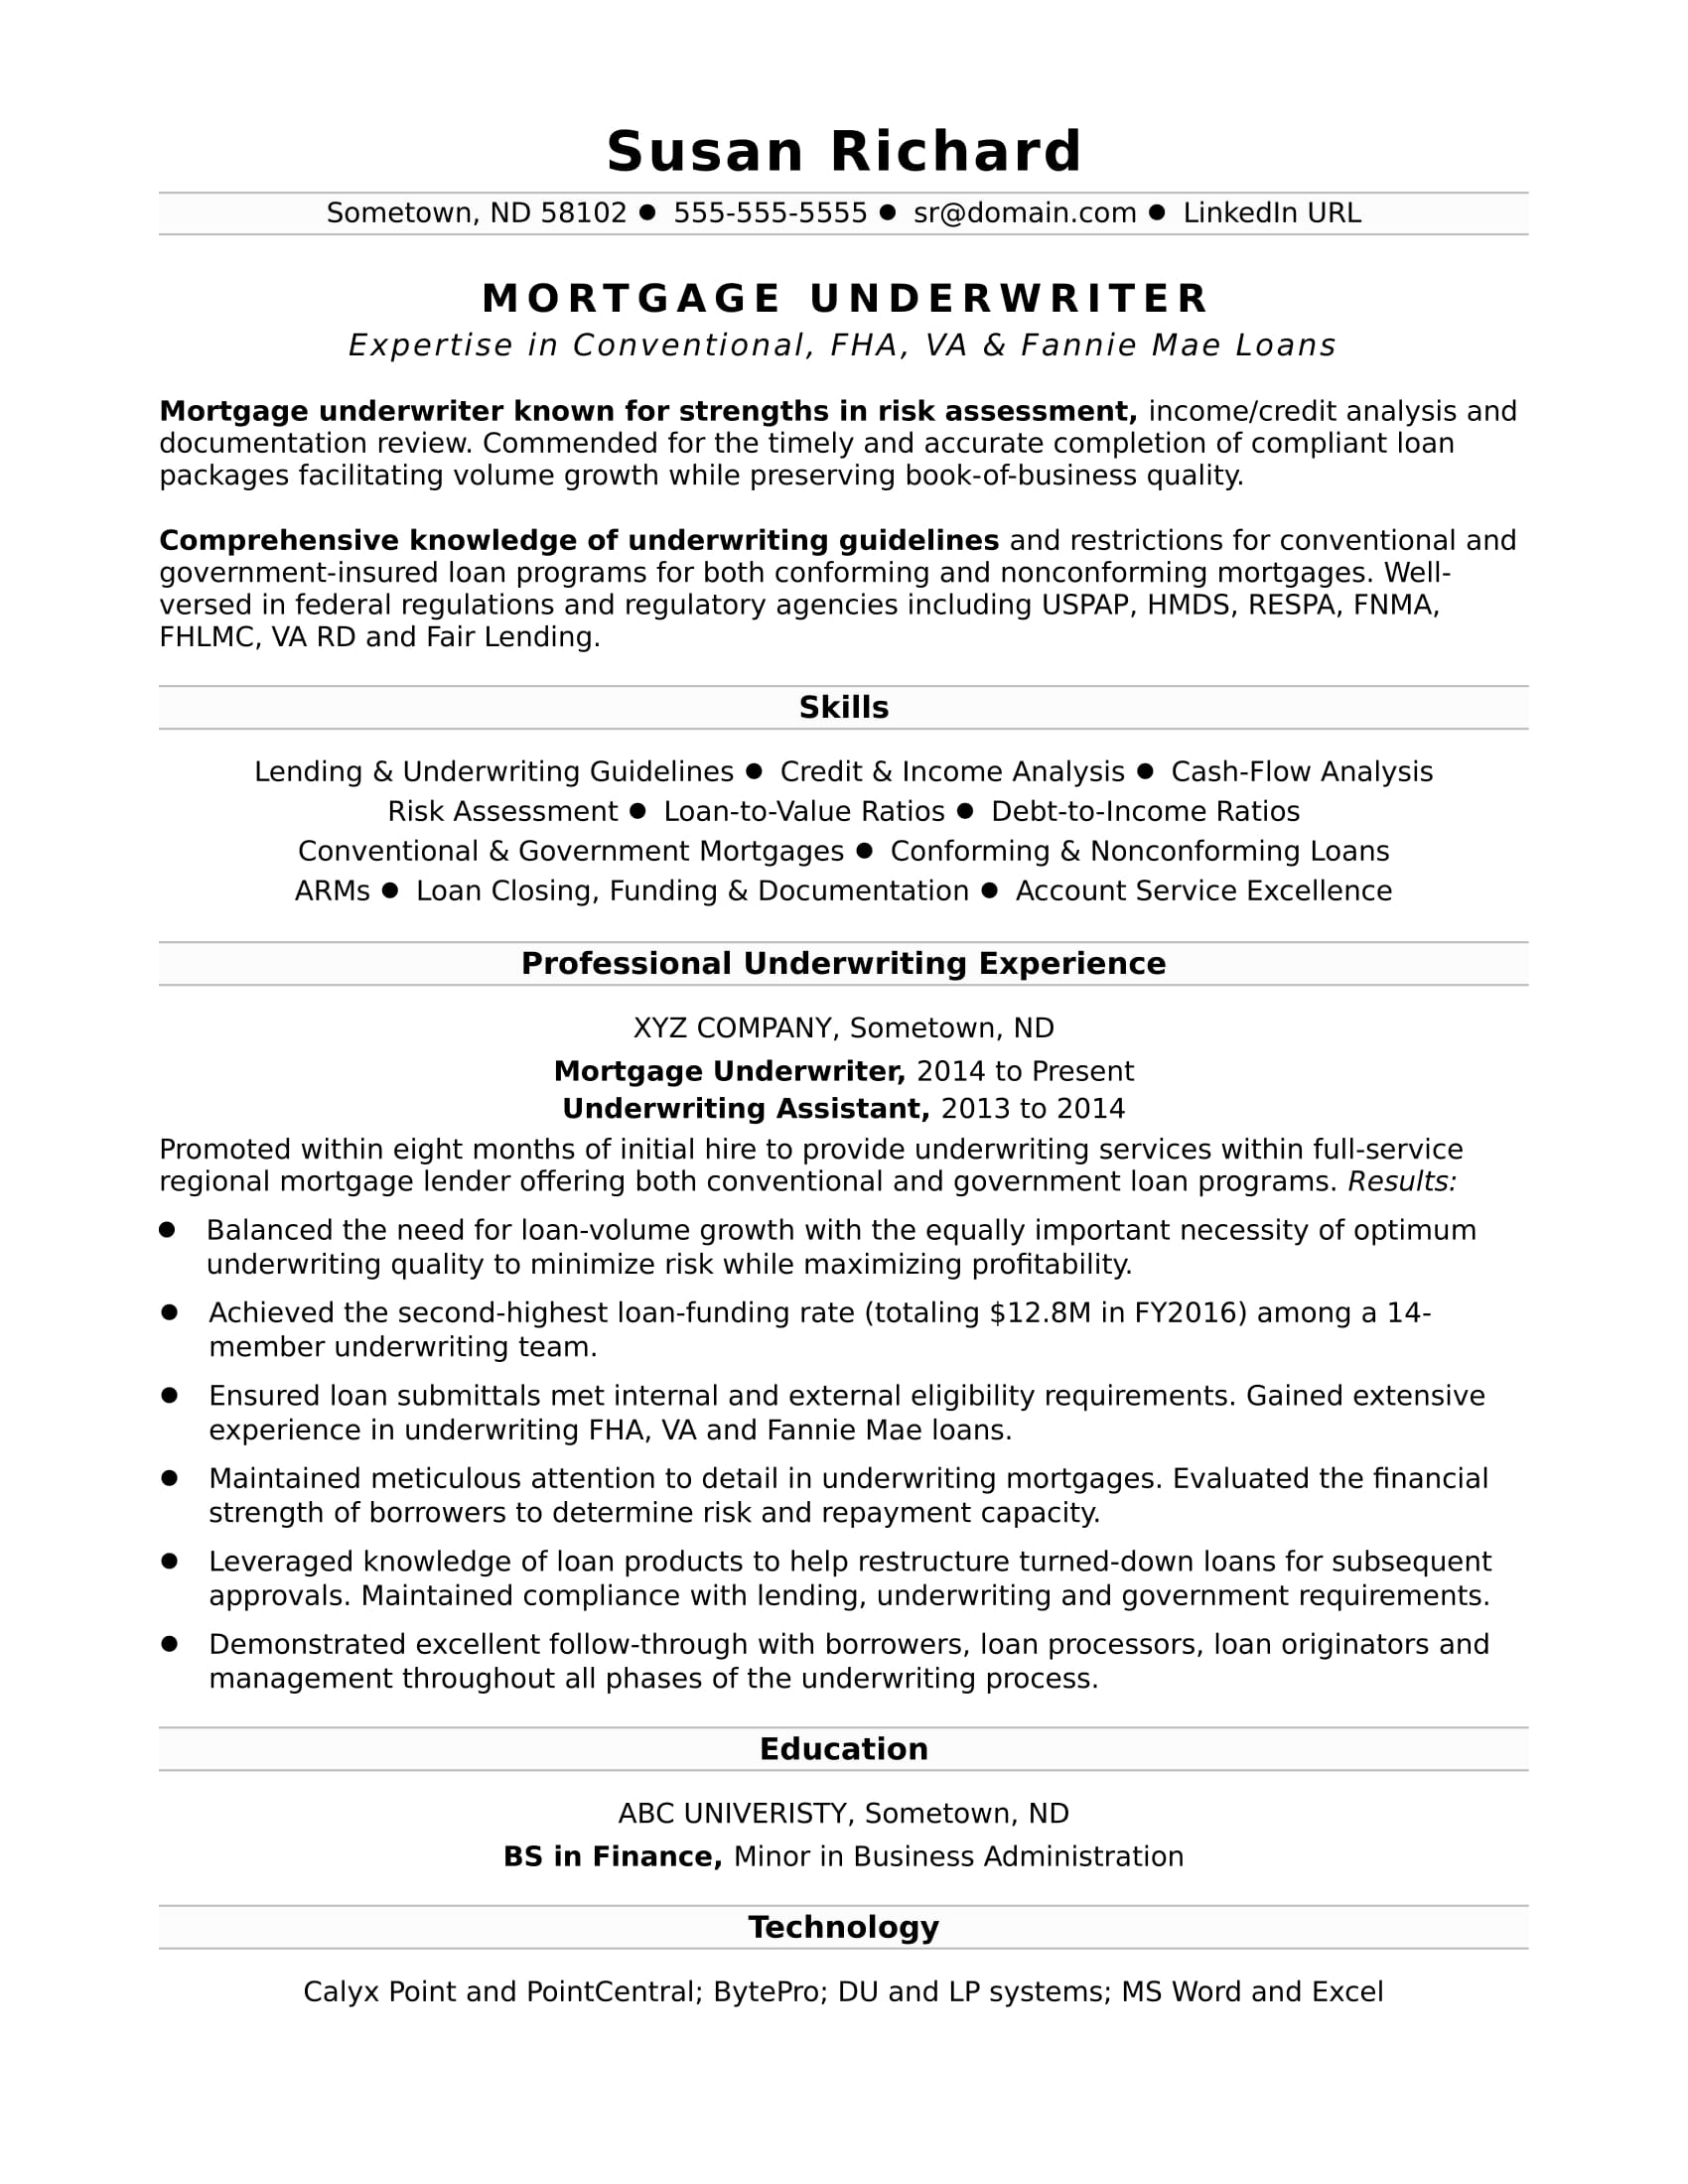 resume Mortgage Underwriter Resume mortgage underwriter resume sample monster com for a underwriter